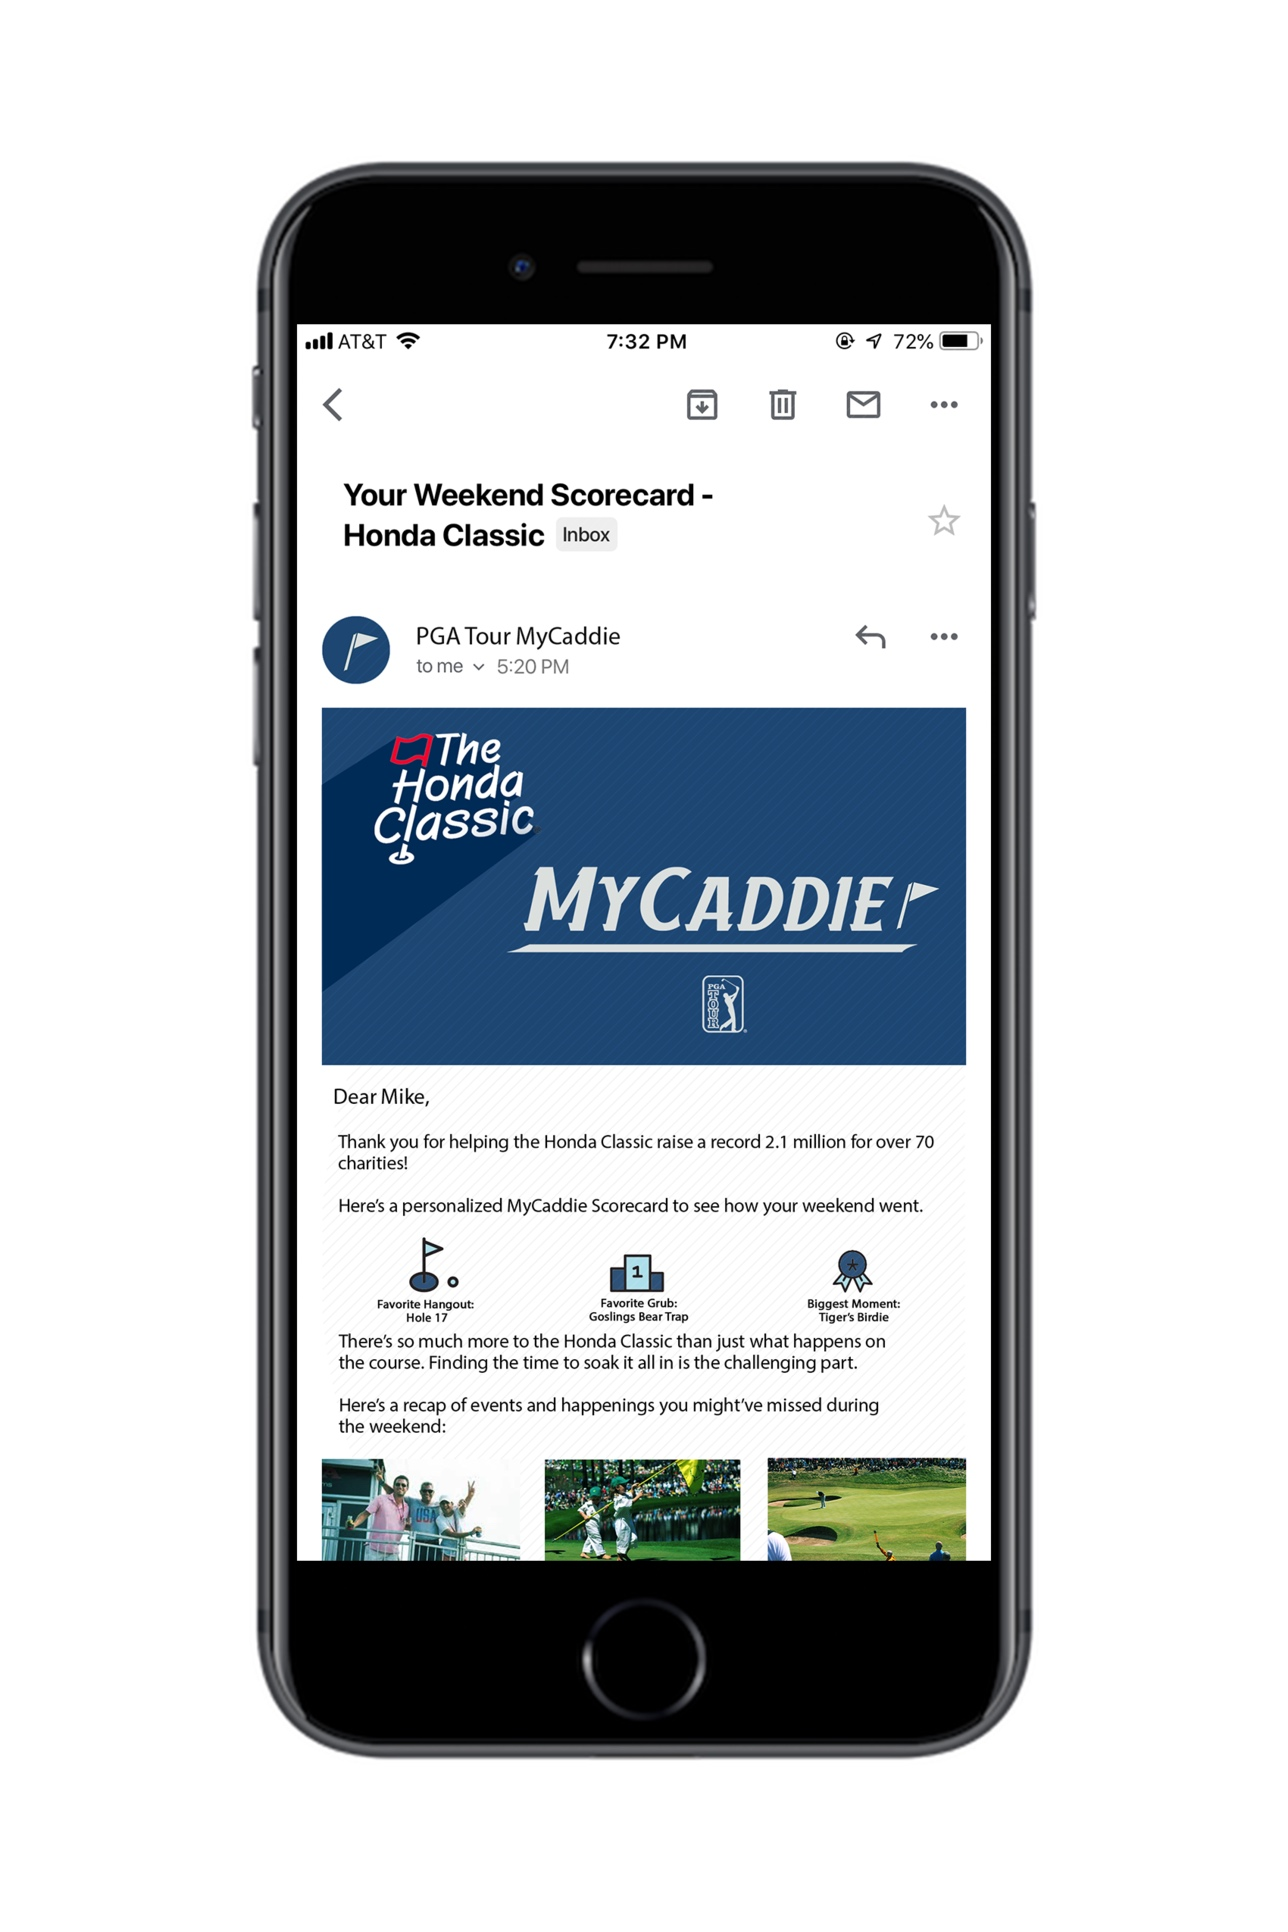 MyCaddie score card email, showing people what they may have missed.